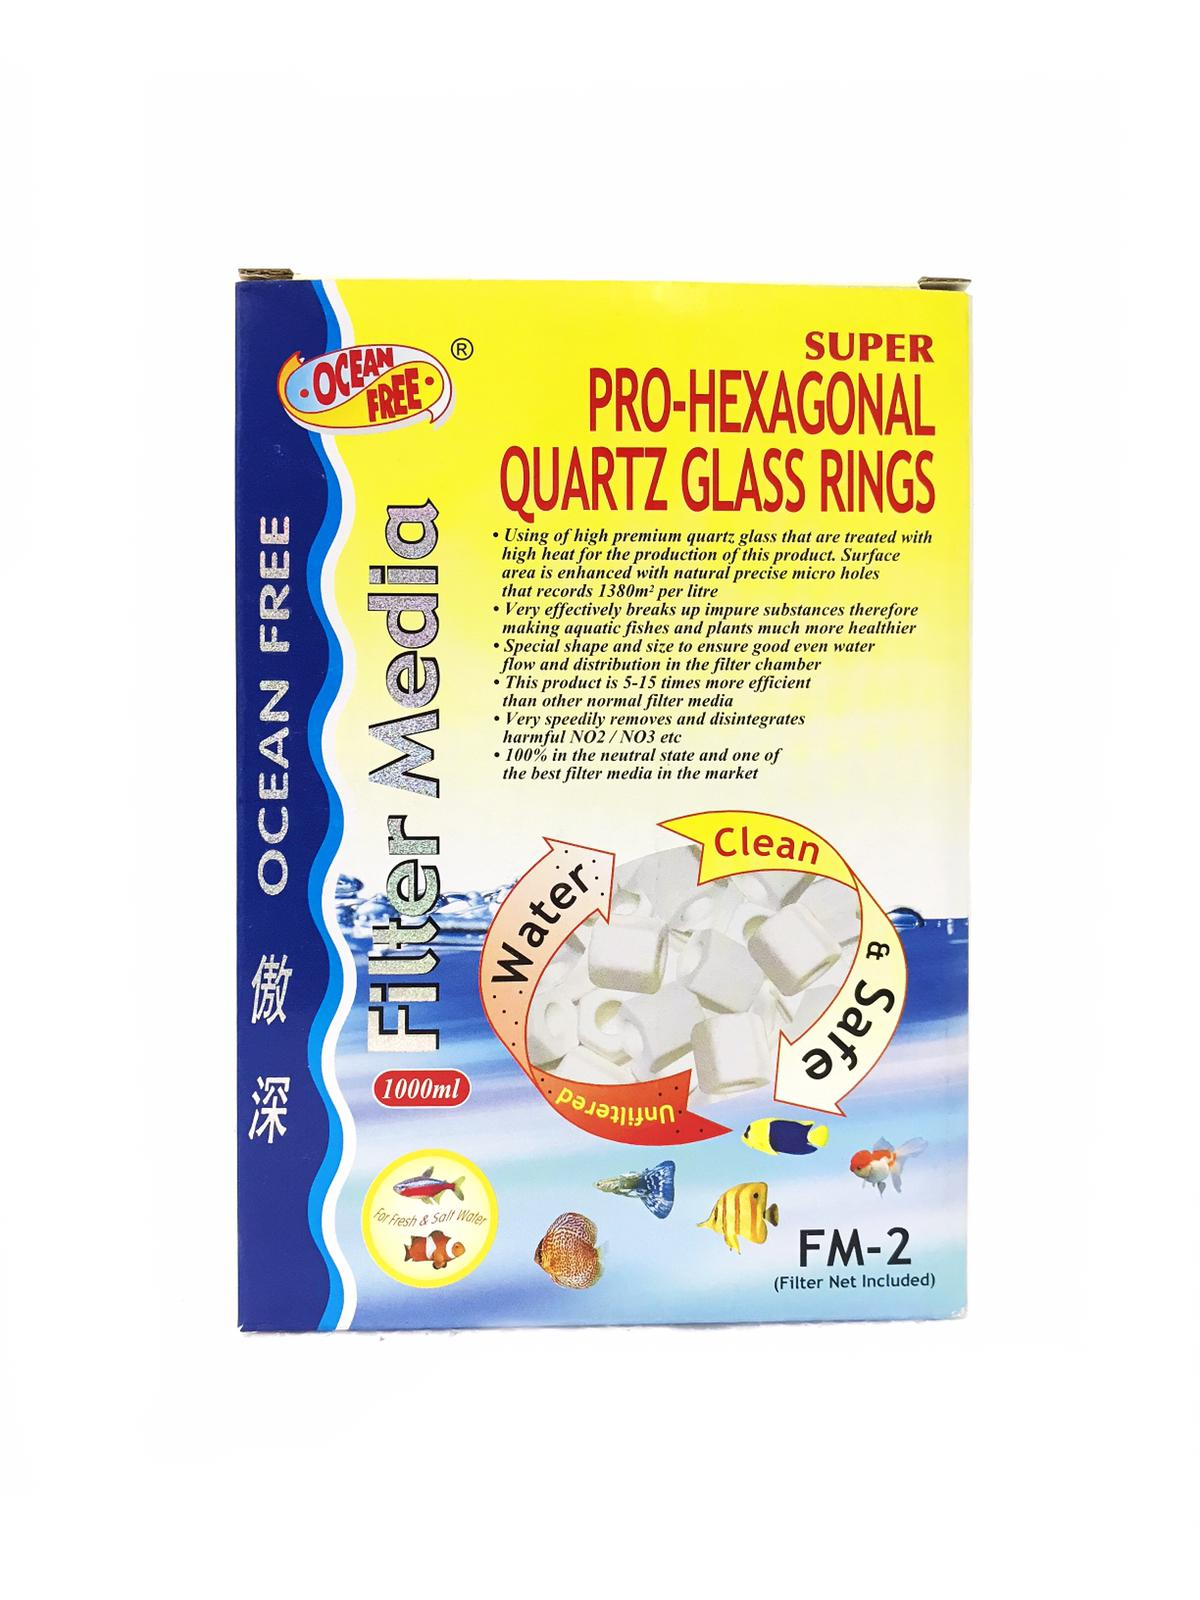 OF Super Pro-Hexagonal Quartz Glass Rings FM-2